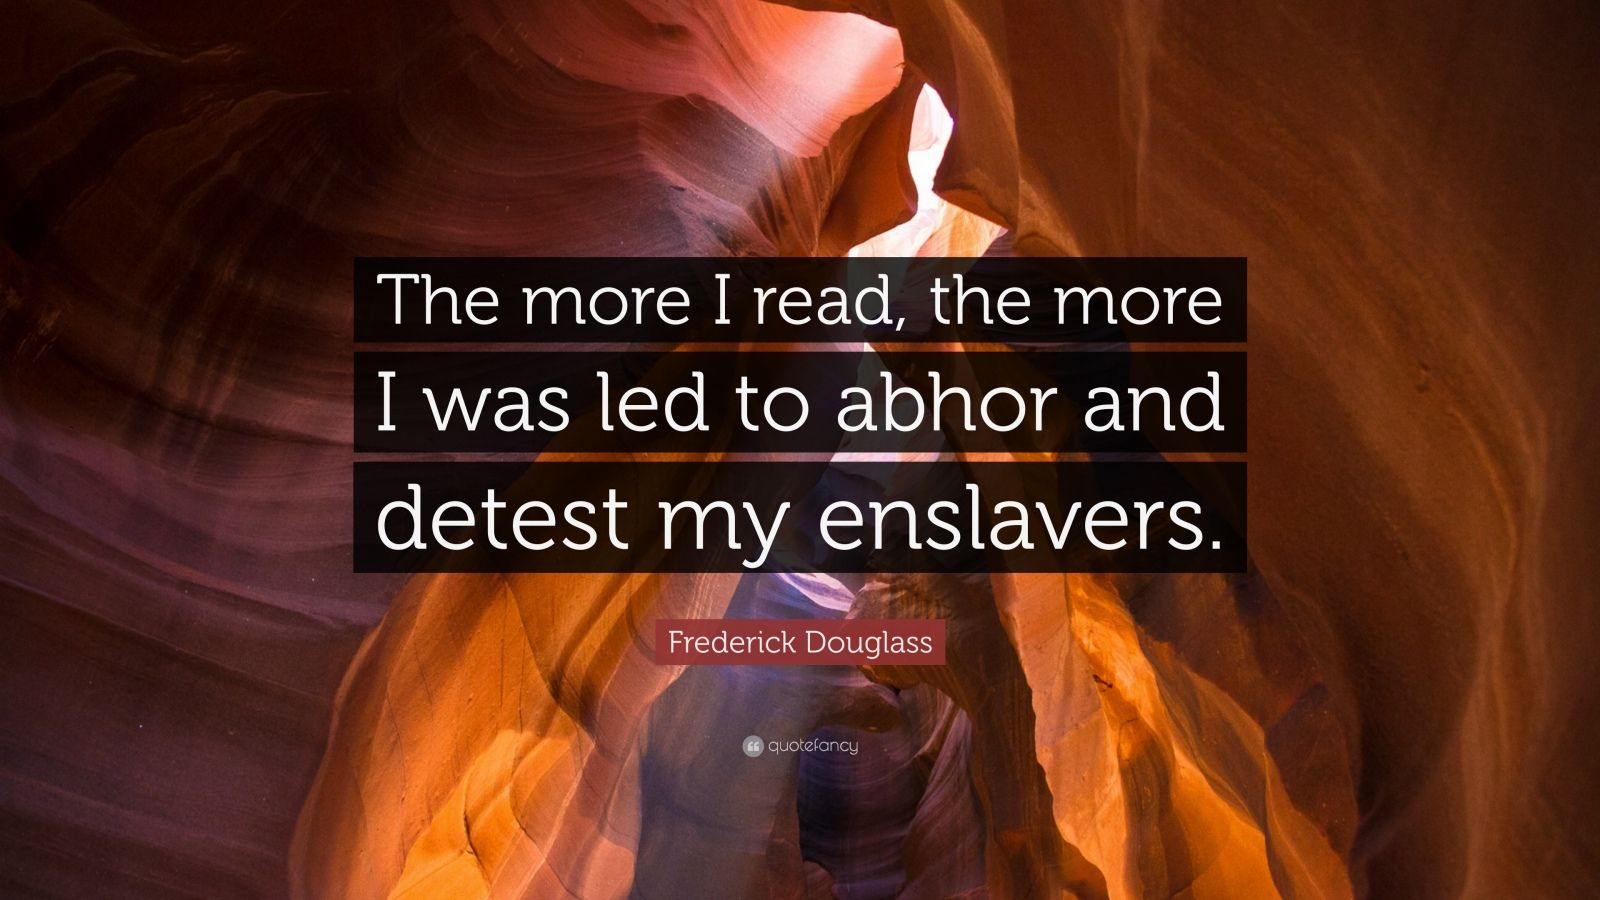 """Frederick Douglass Quote: """"The more I read, the more I was led to abhor and detest my enslavers."""""""